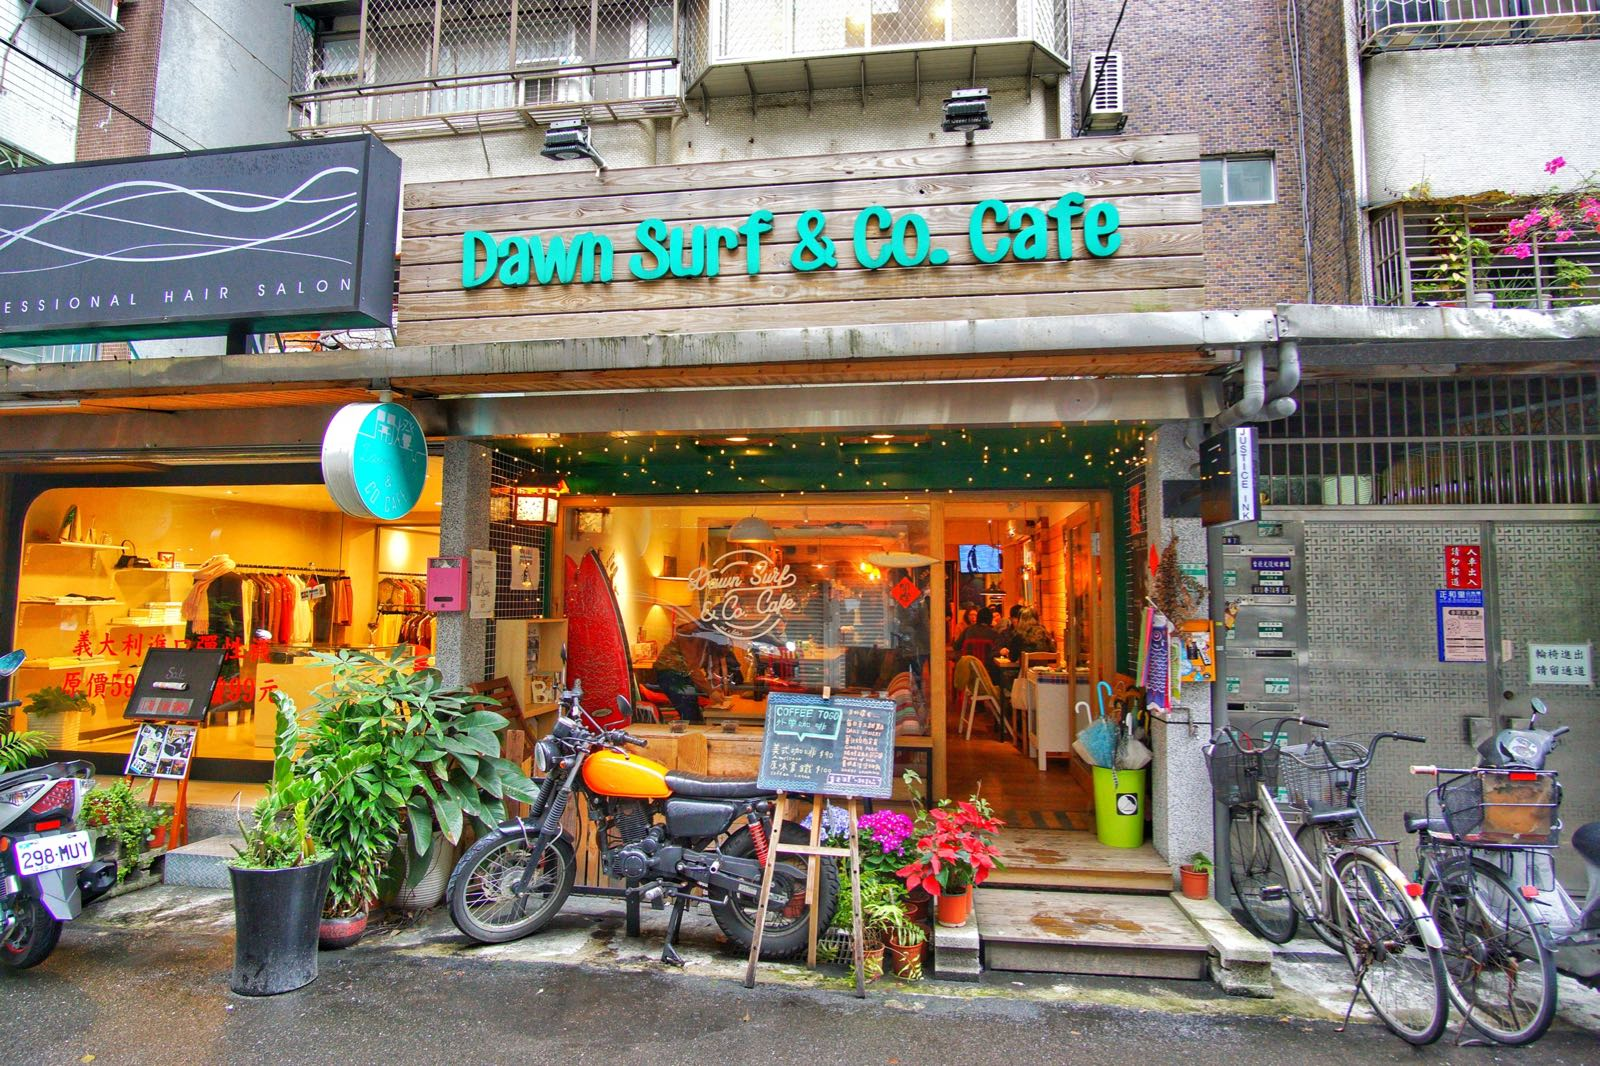 Dawn Surf & Co Cafe Taipei front